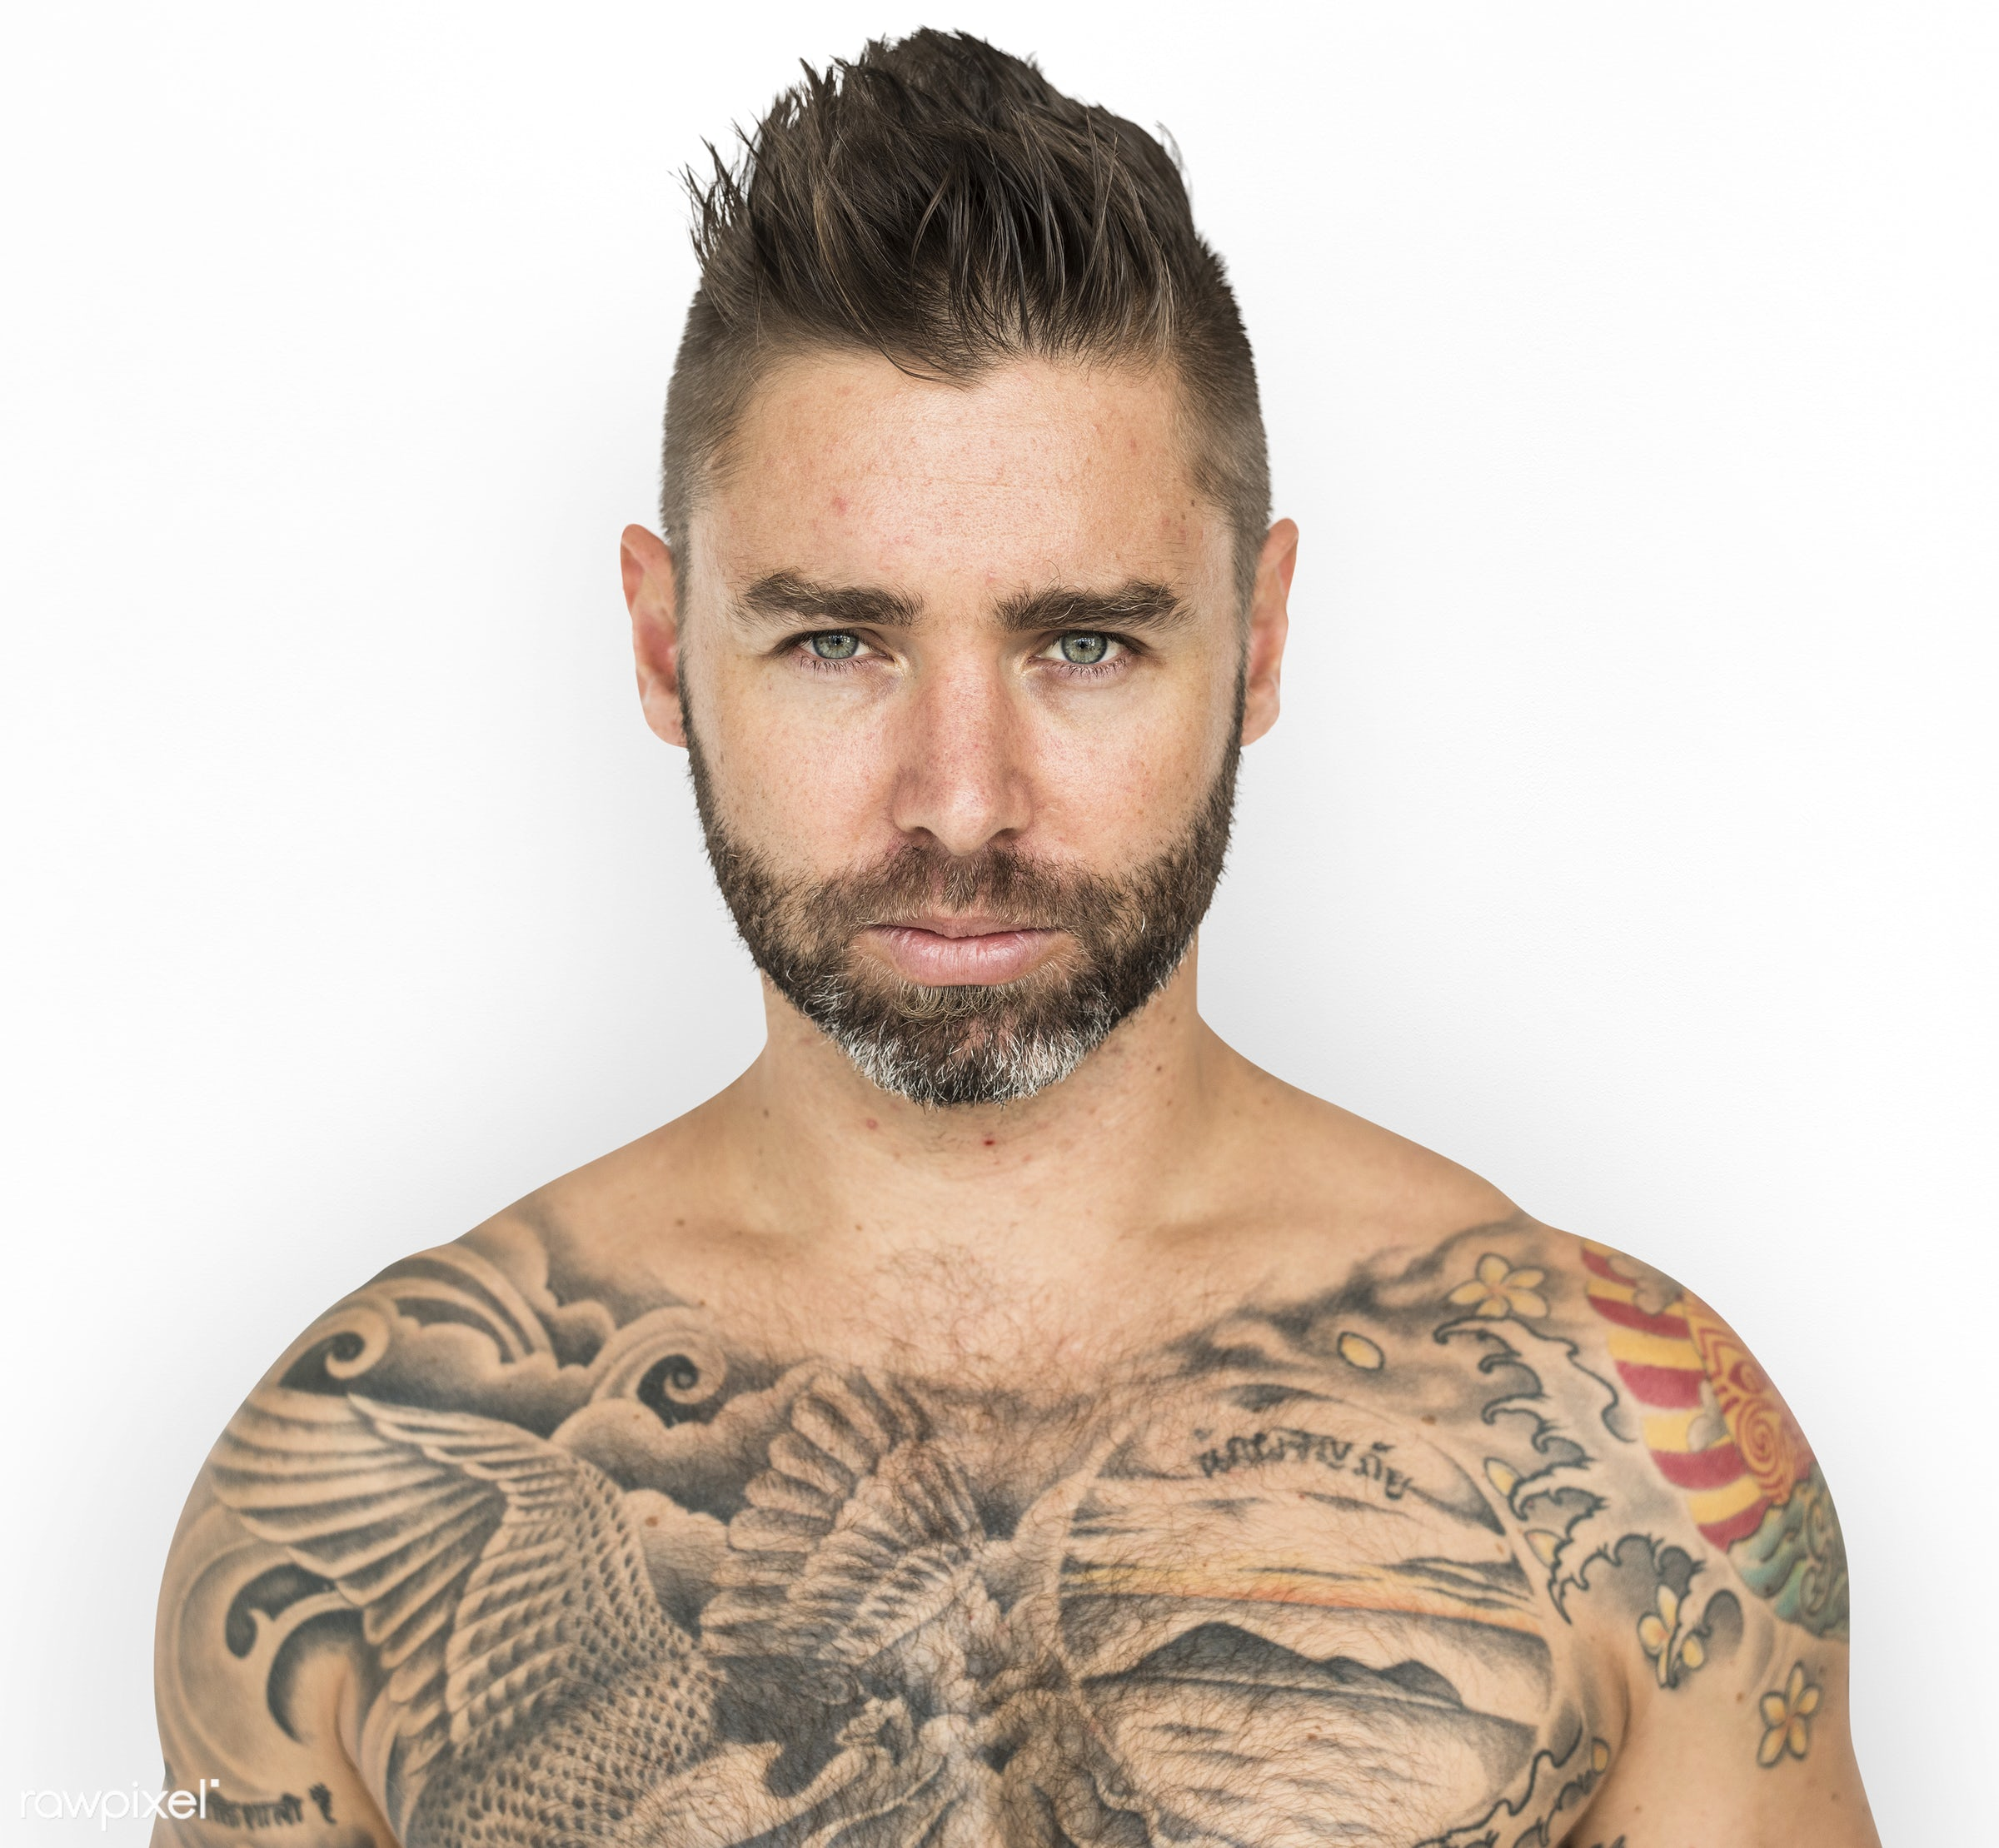 expression, studio, person, poker face, isolated on white, chest, people, caucasian, bare chest, fit, style, solo, tattoo,...